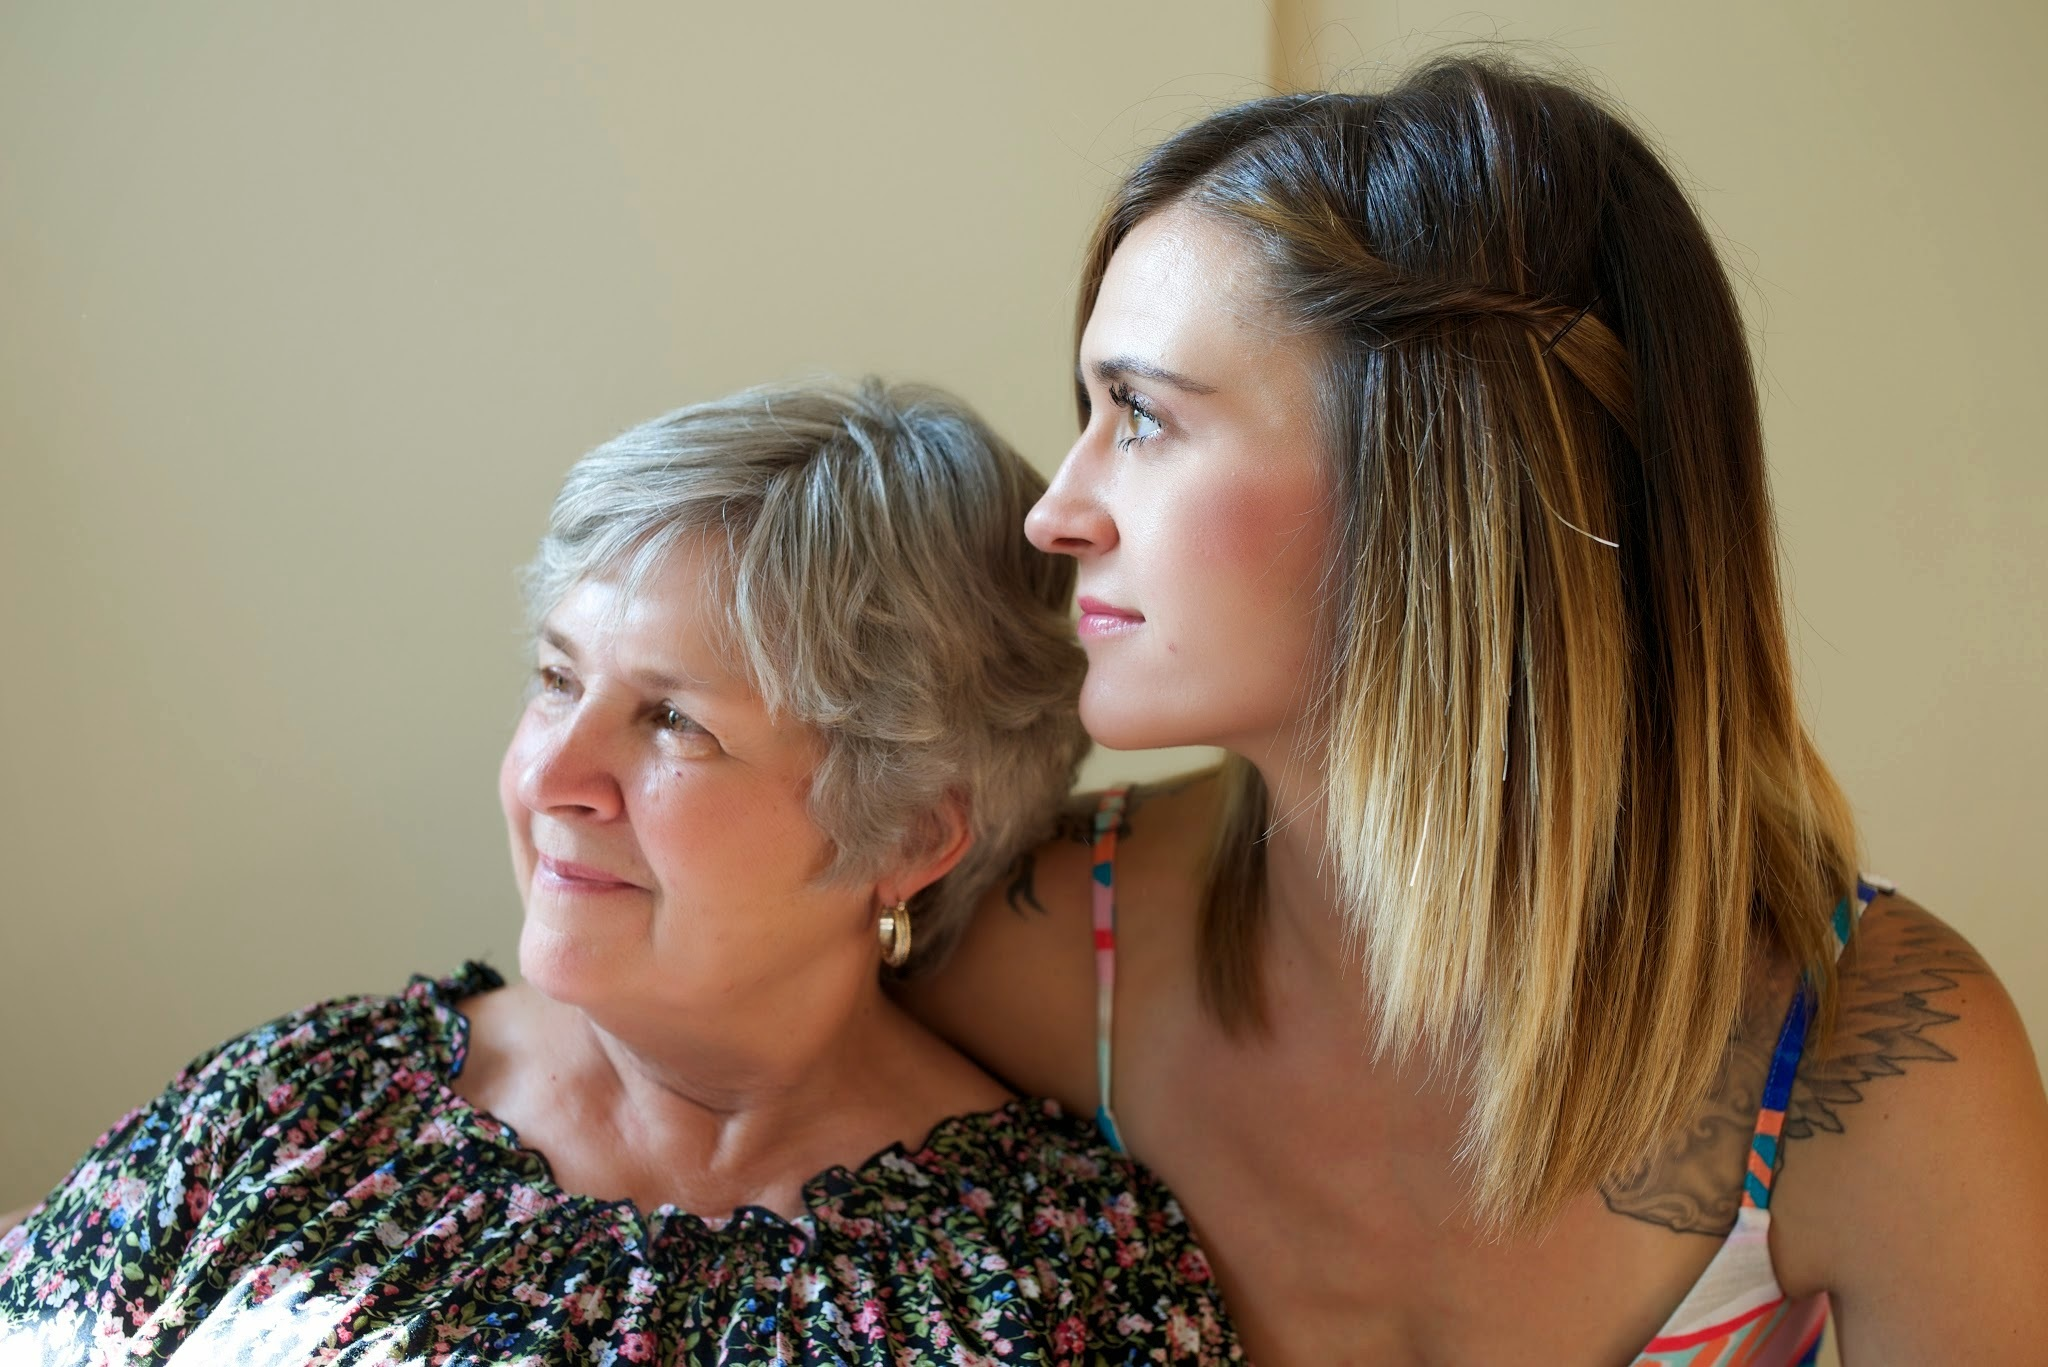 Photo: aging woman and younger woman to her right